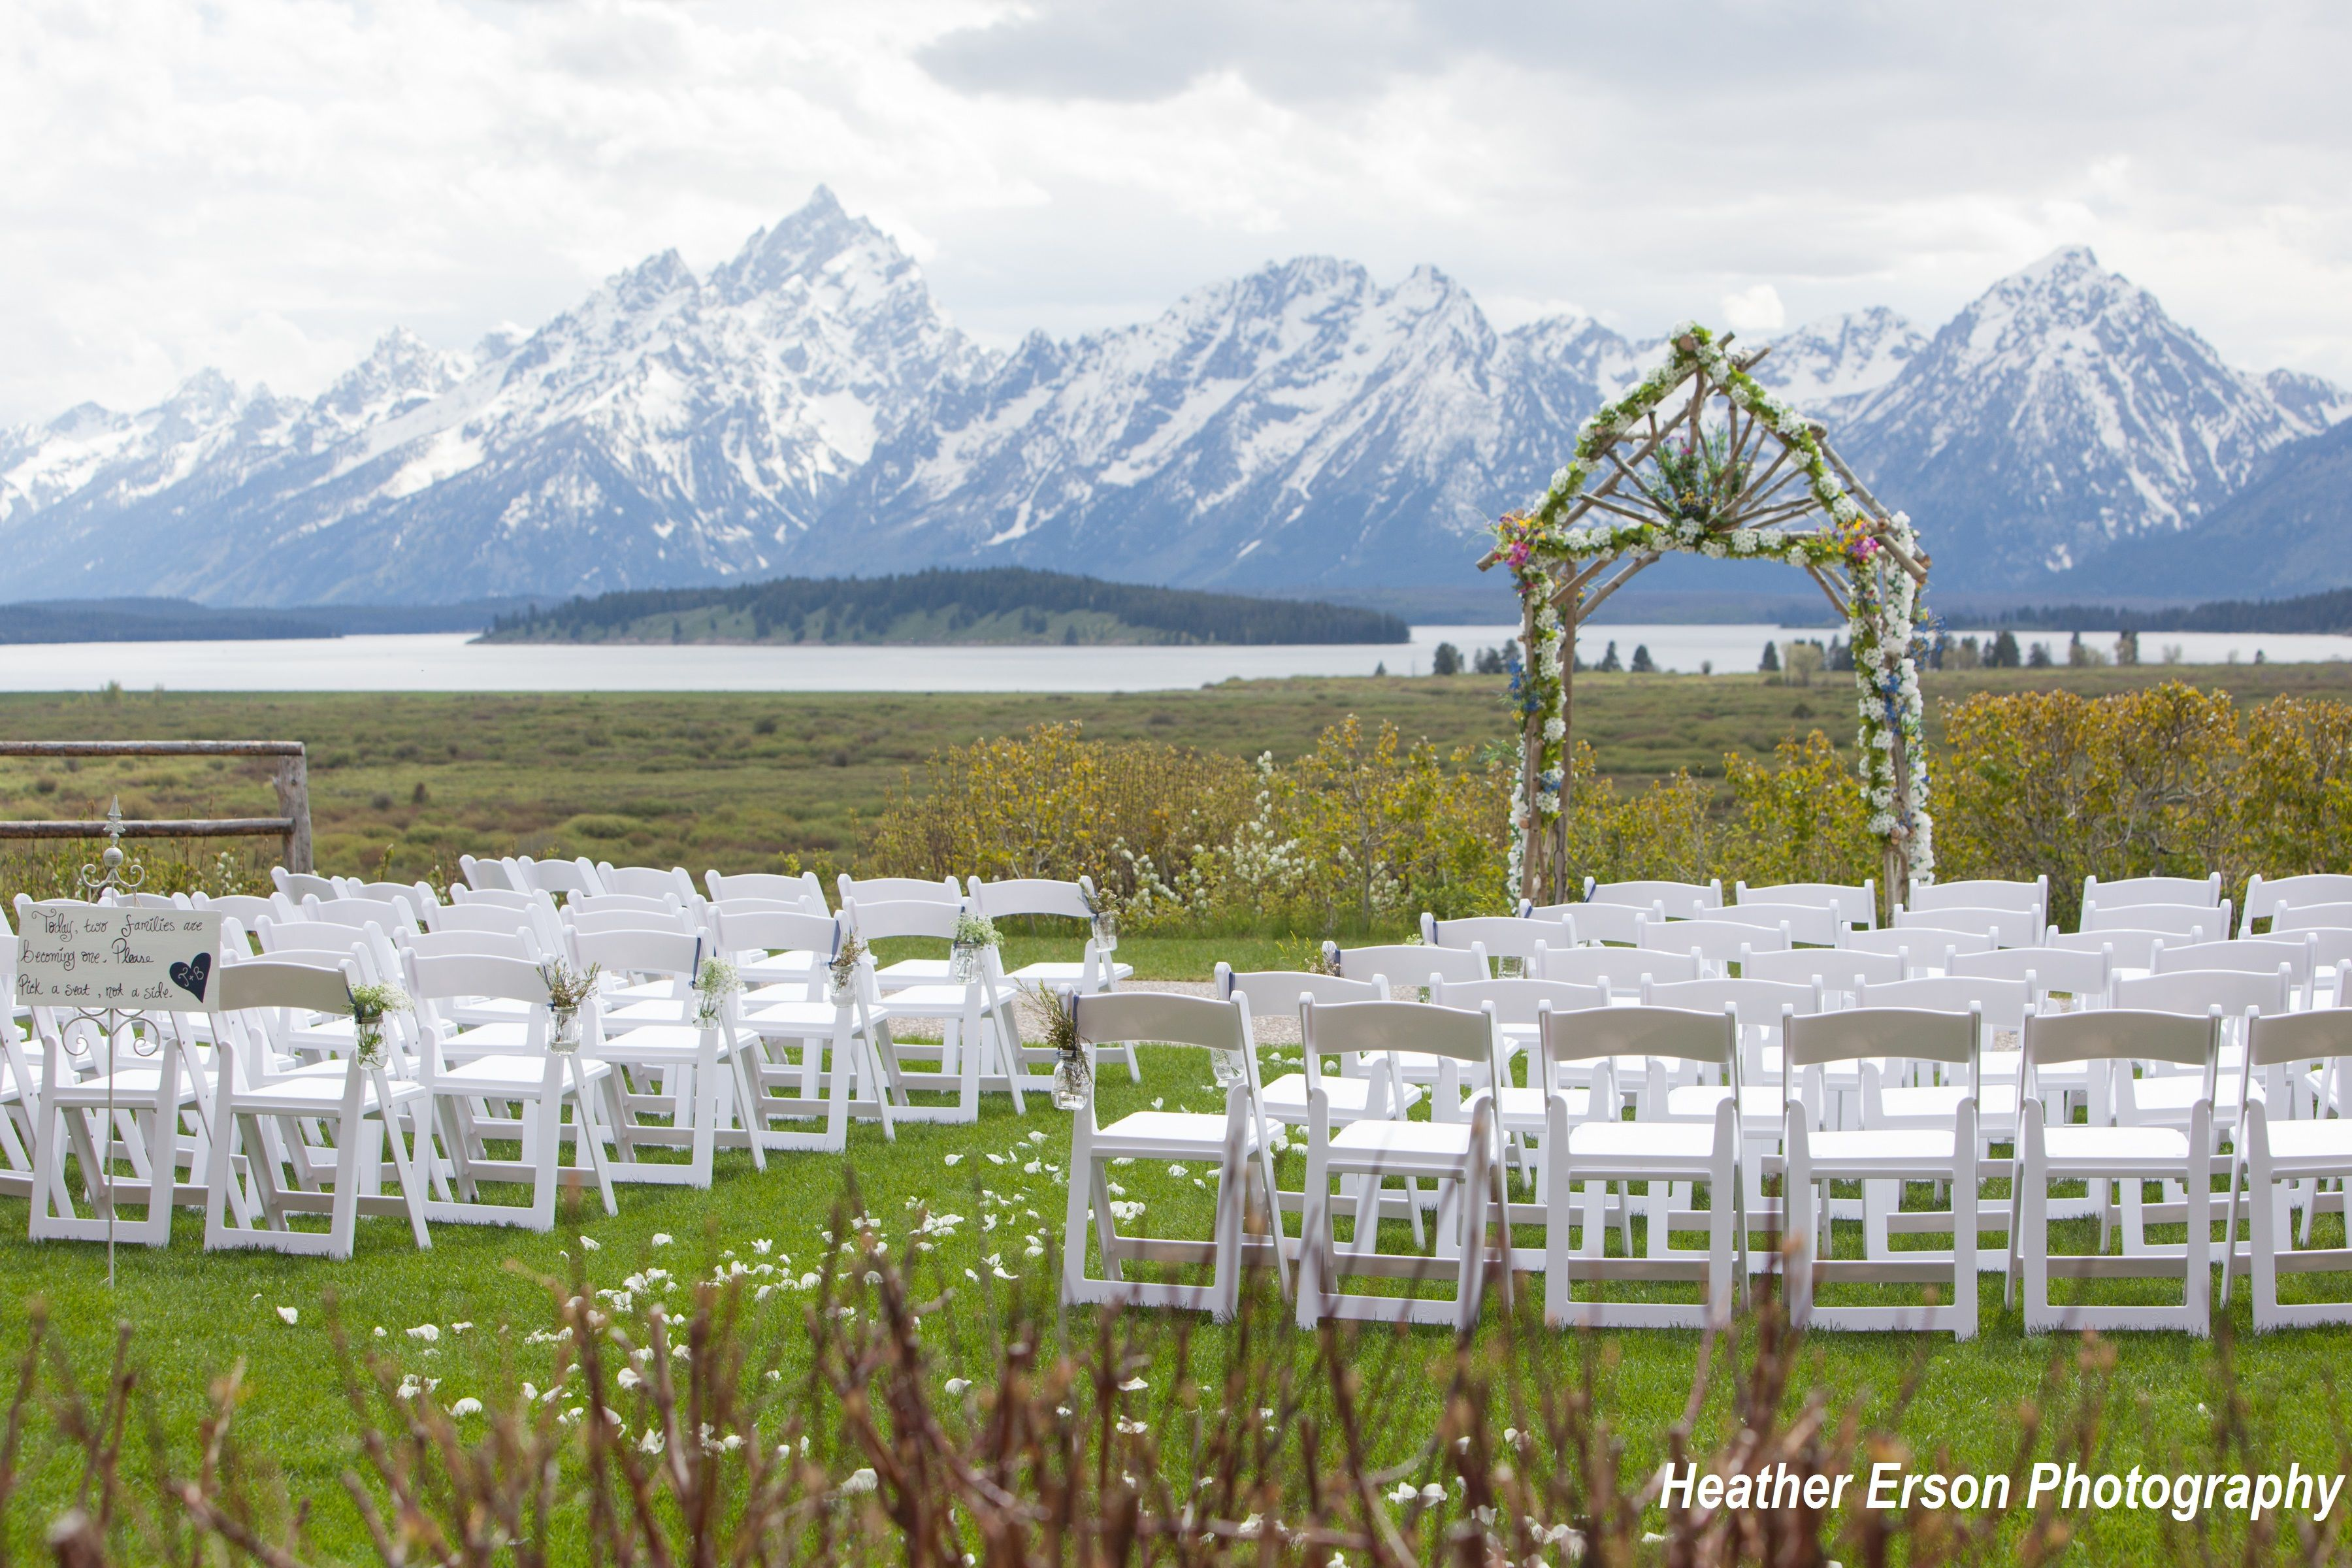 Merveilleux Outdoor Mountain Wedding With A Stunning View Of The Tetons At Jackson Lake  Lodge #mountainwedding #outdoorwedding @heathererson